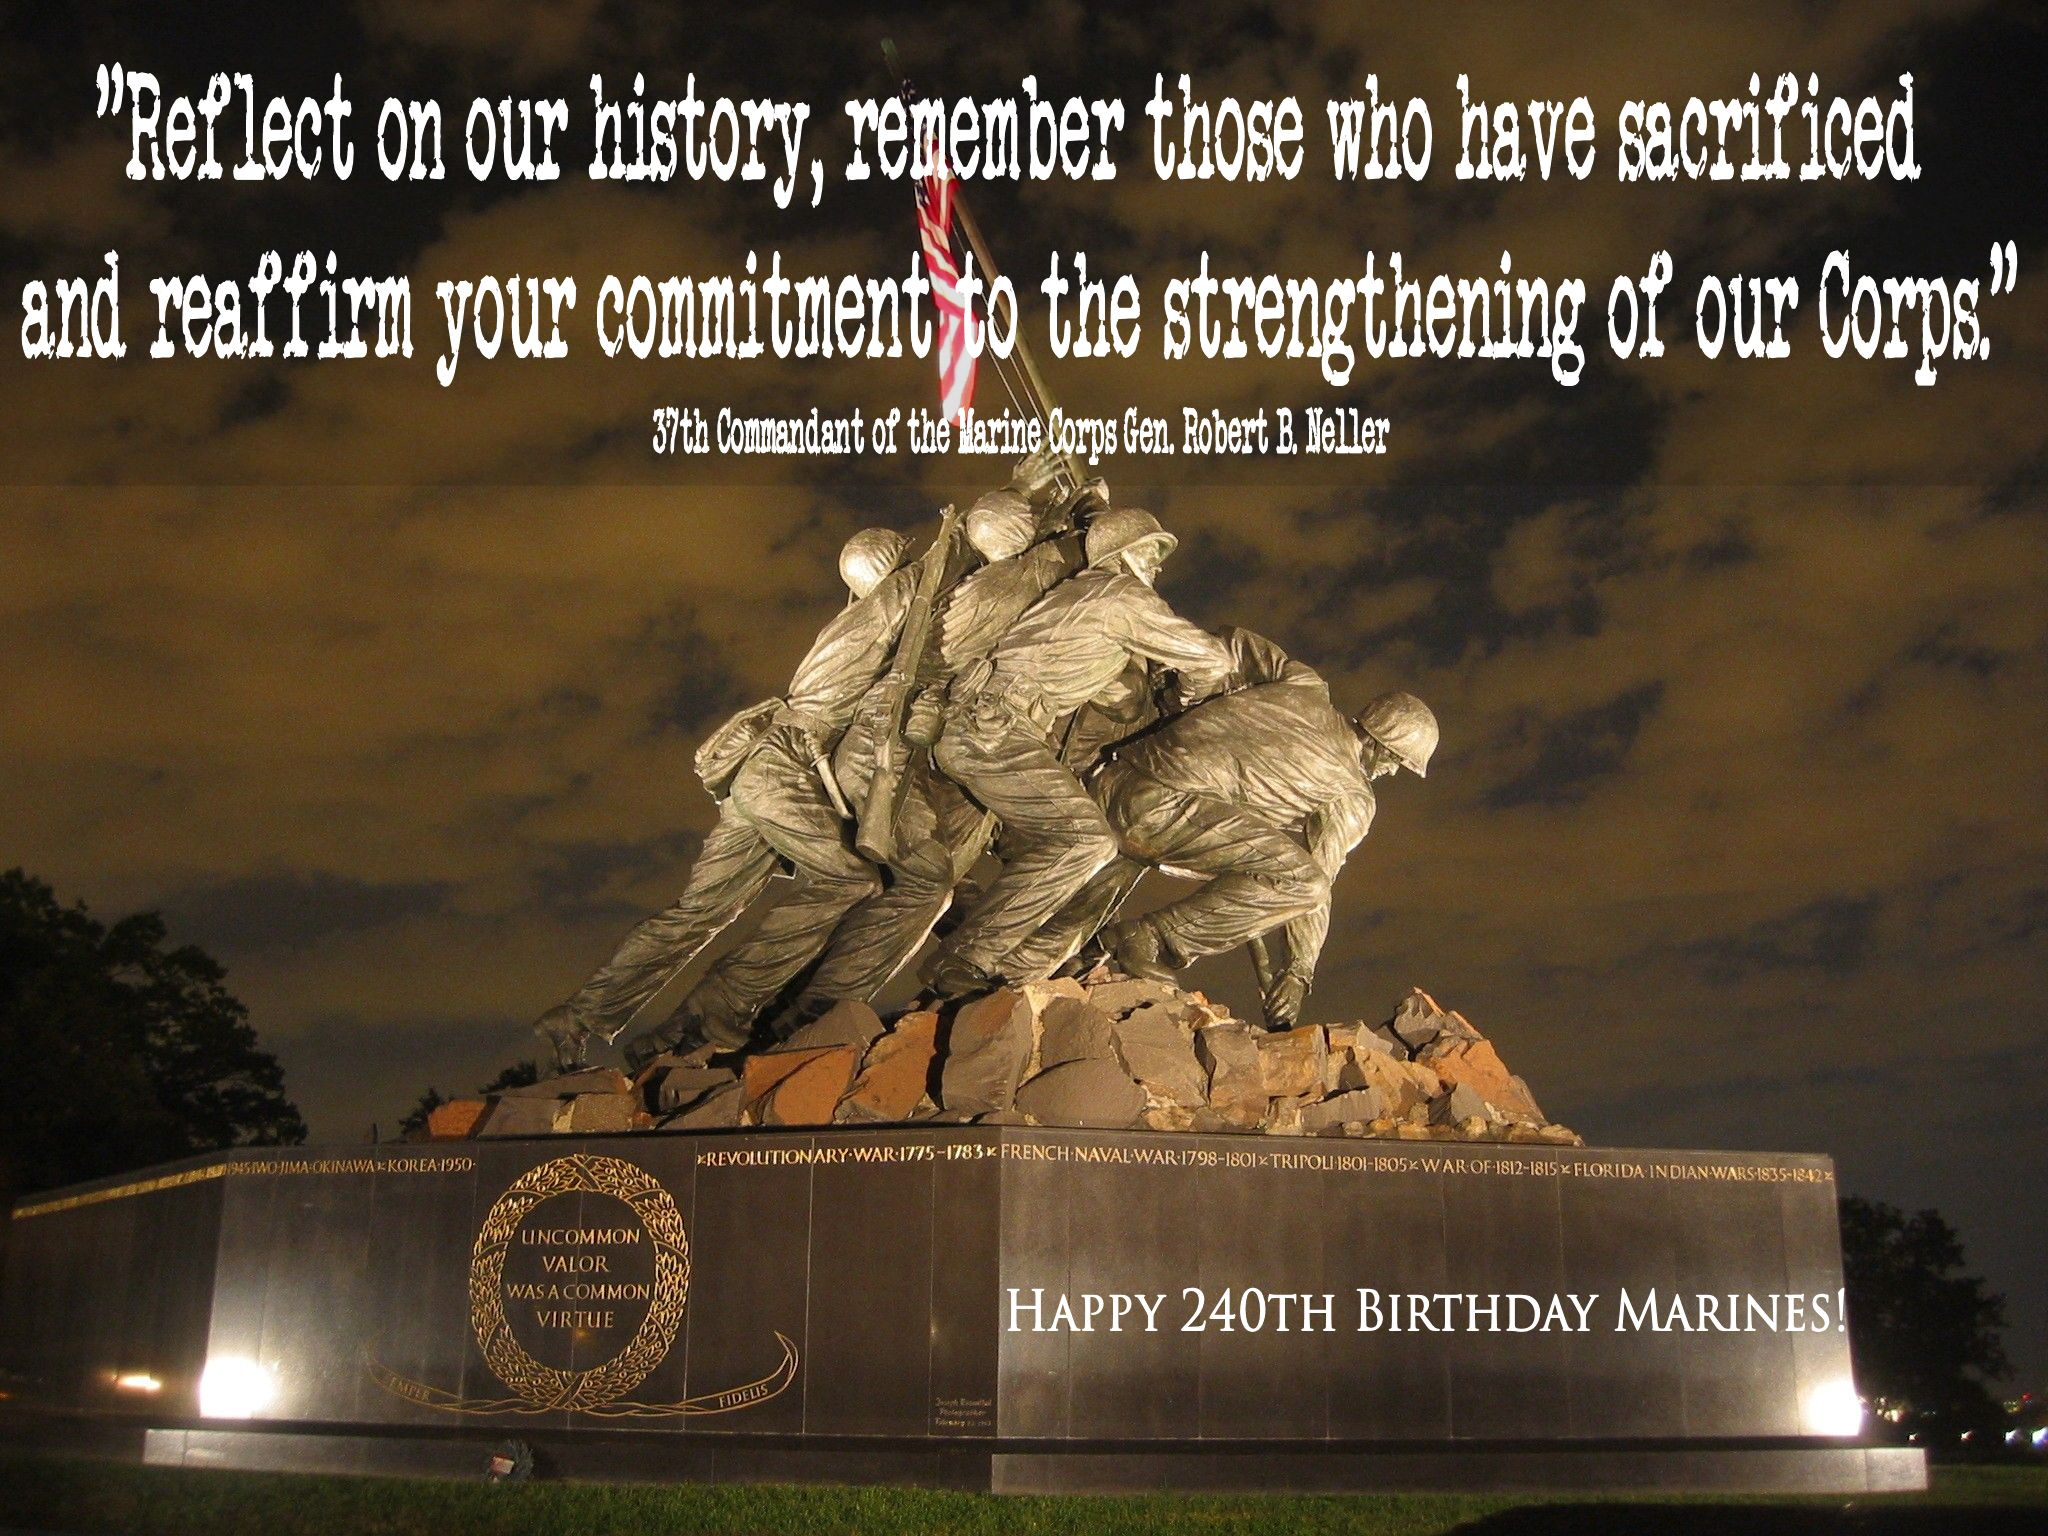 Happy 240th Birthday Marines